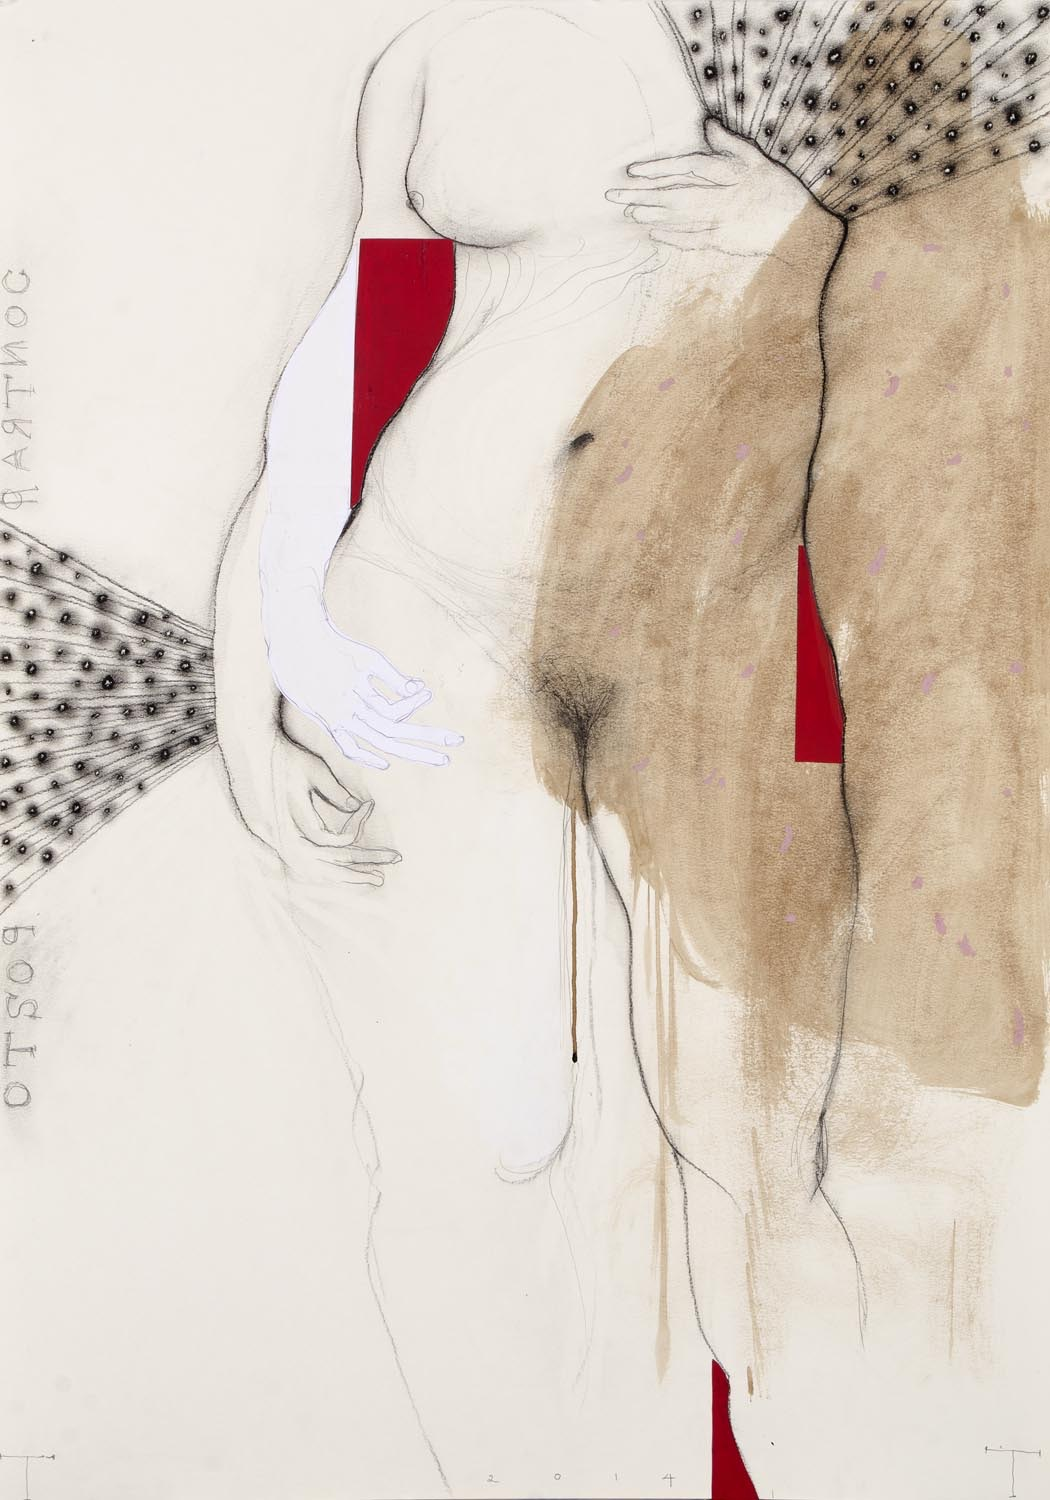 'Contrapposto' series, mixed media on paper, 100 X 70 cm, 2014 copy